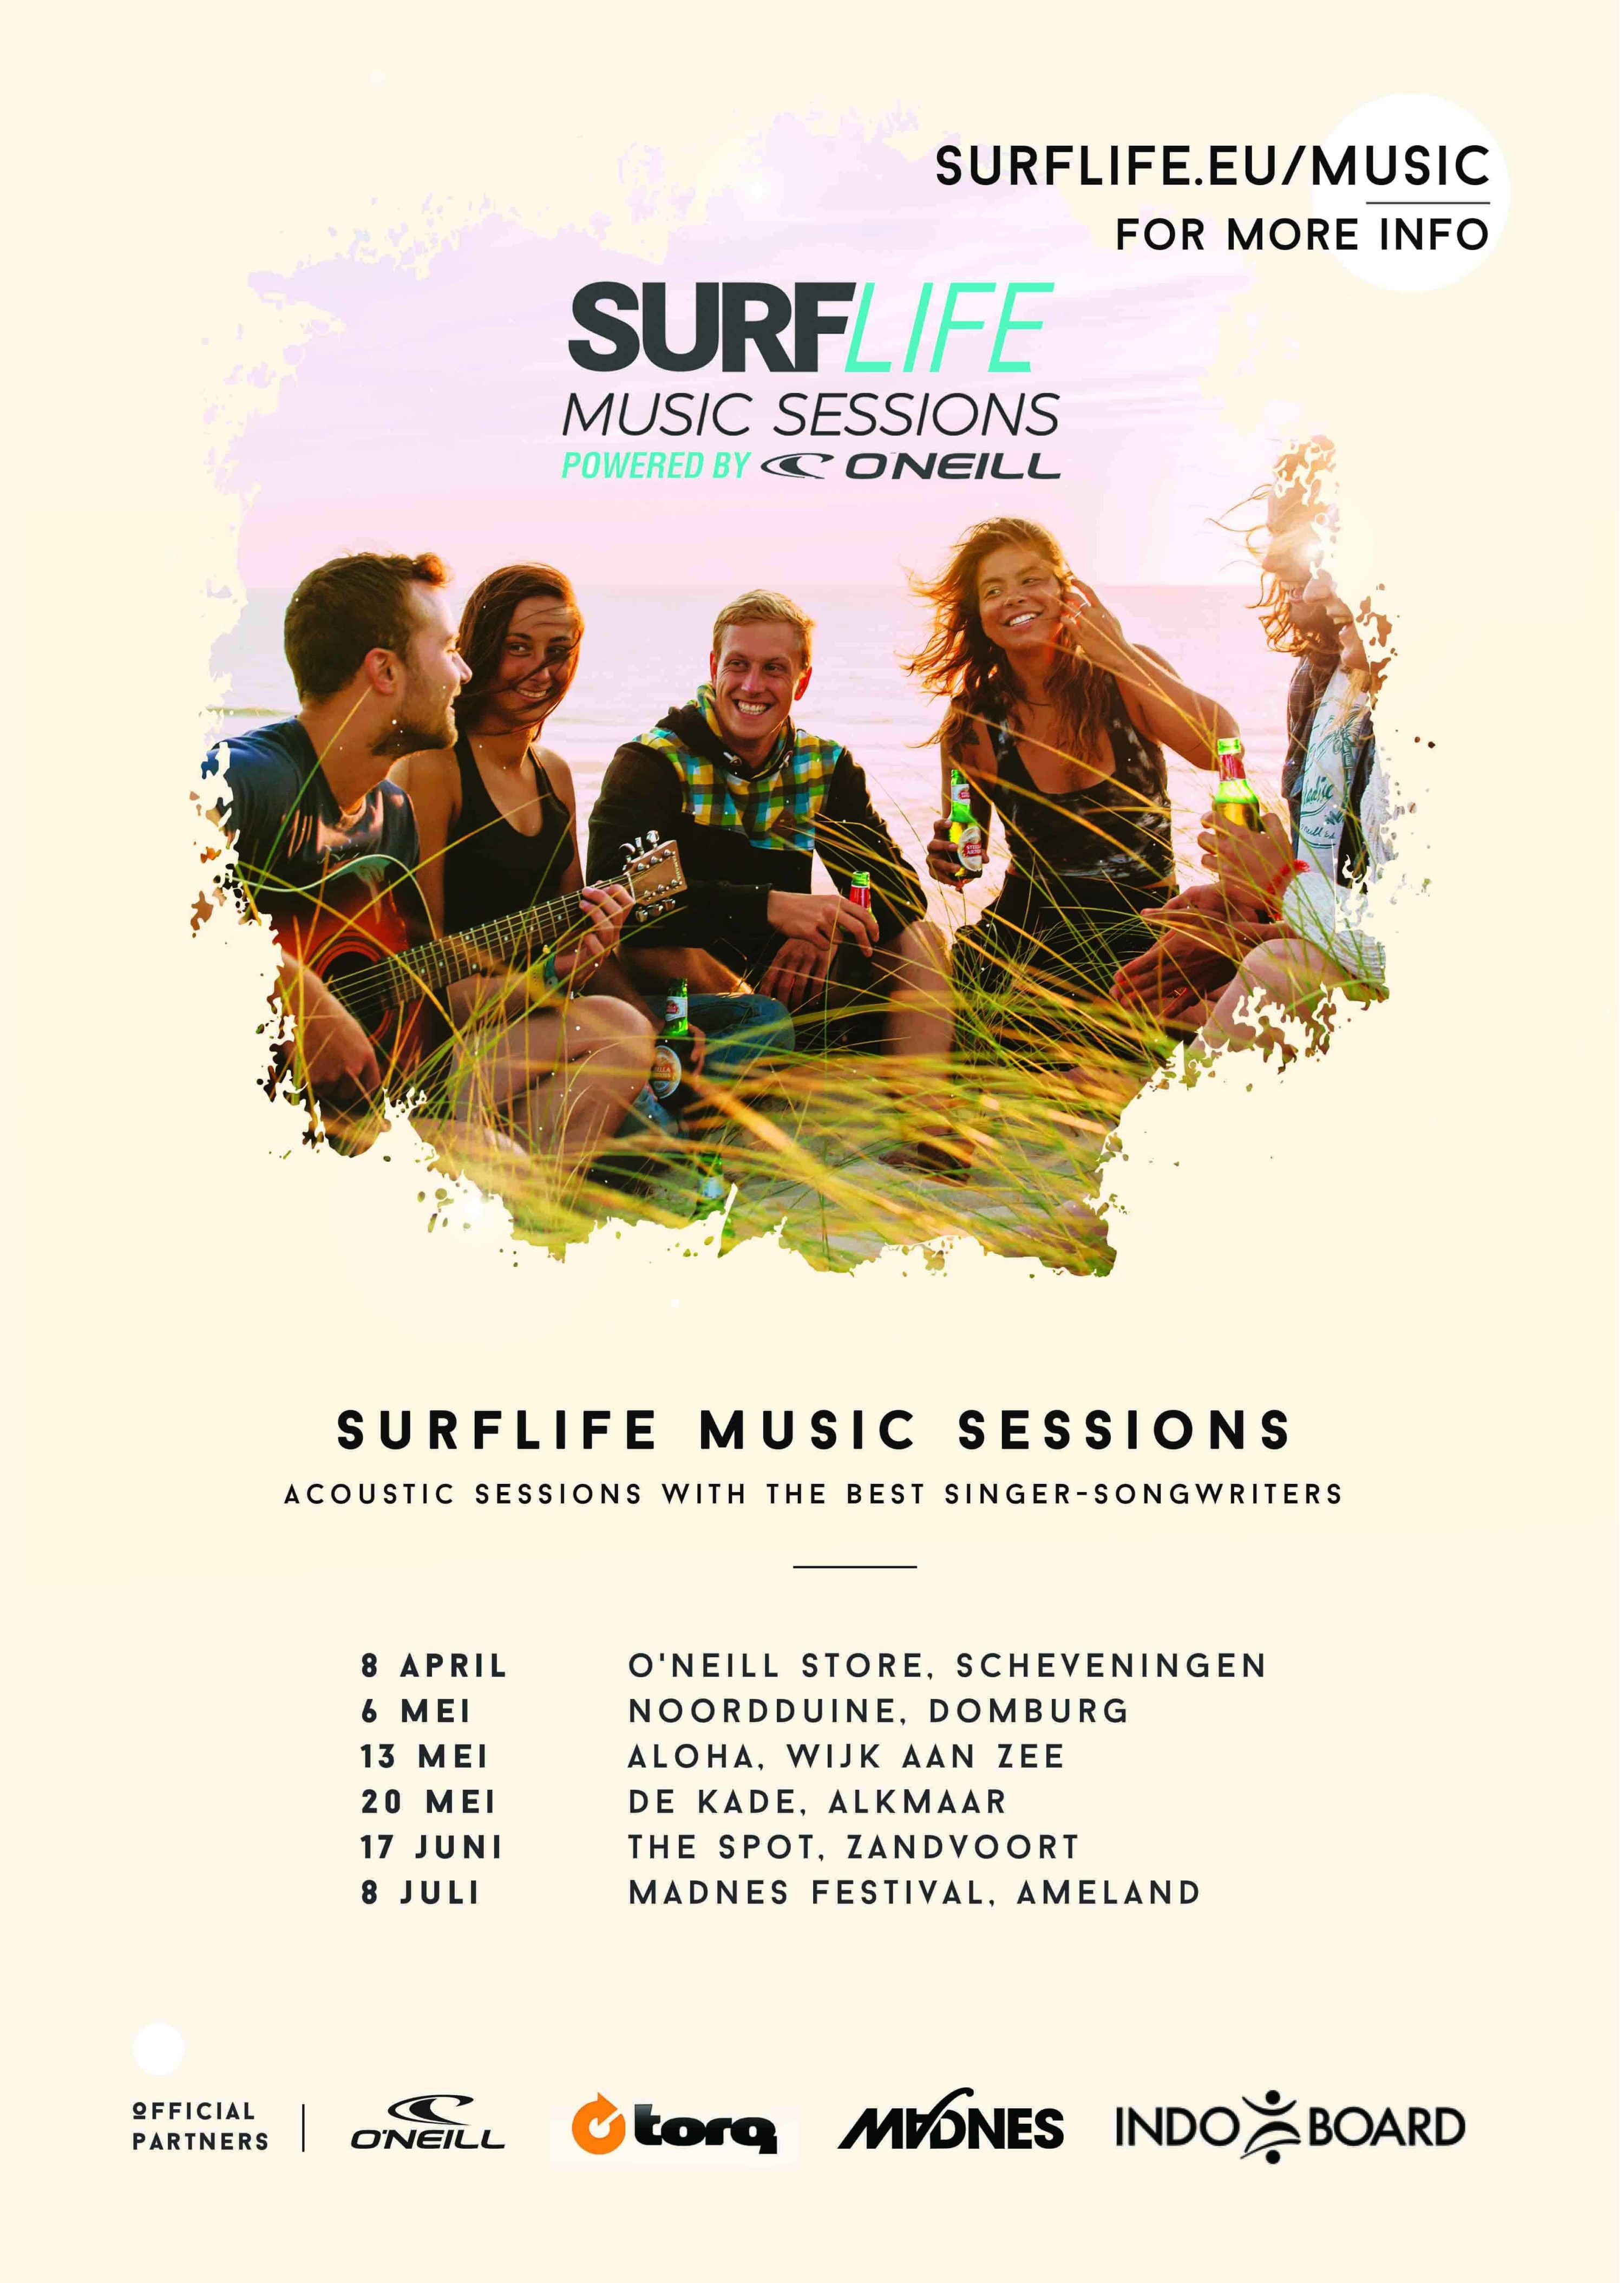 Surflife Music Sessions Surfvakanties